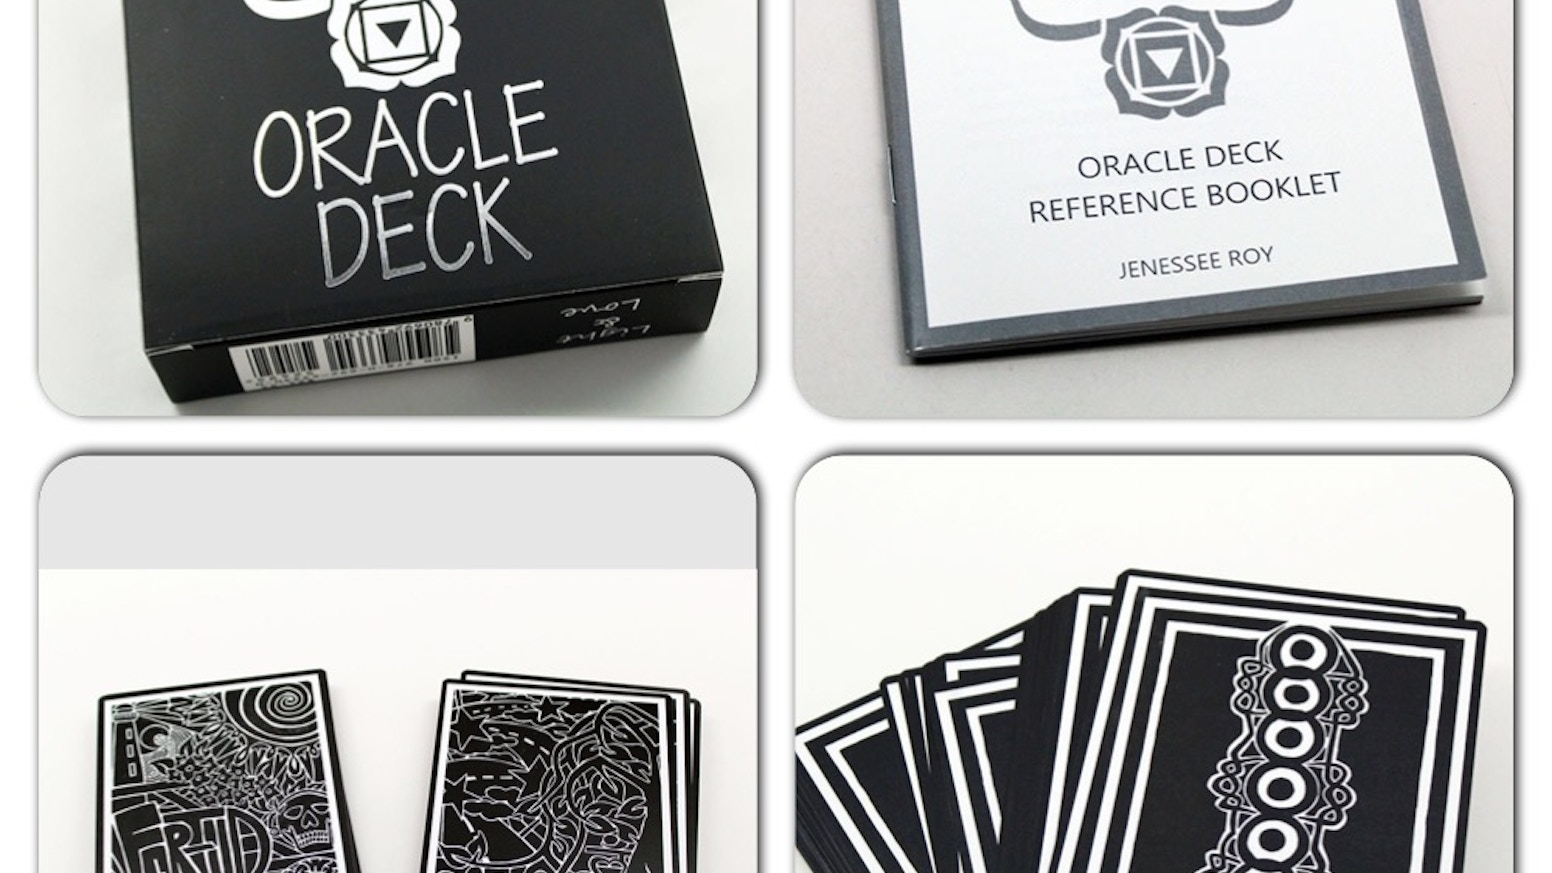 It's Over!We did it with your help!!Oracle Deck, Workbook & eBook ready for distrabution in September 2015